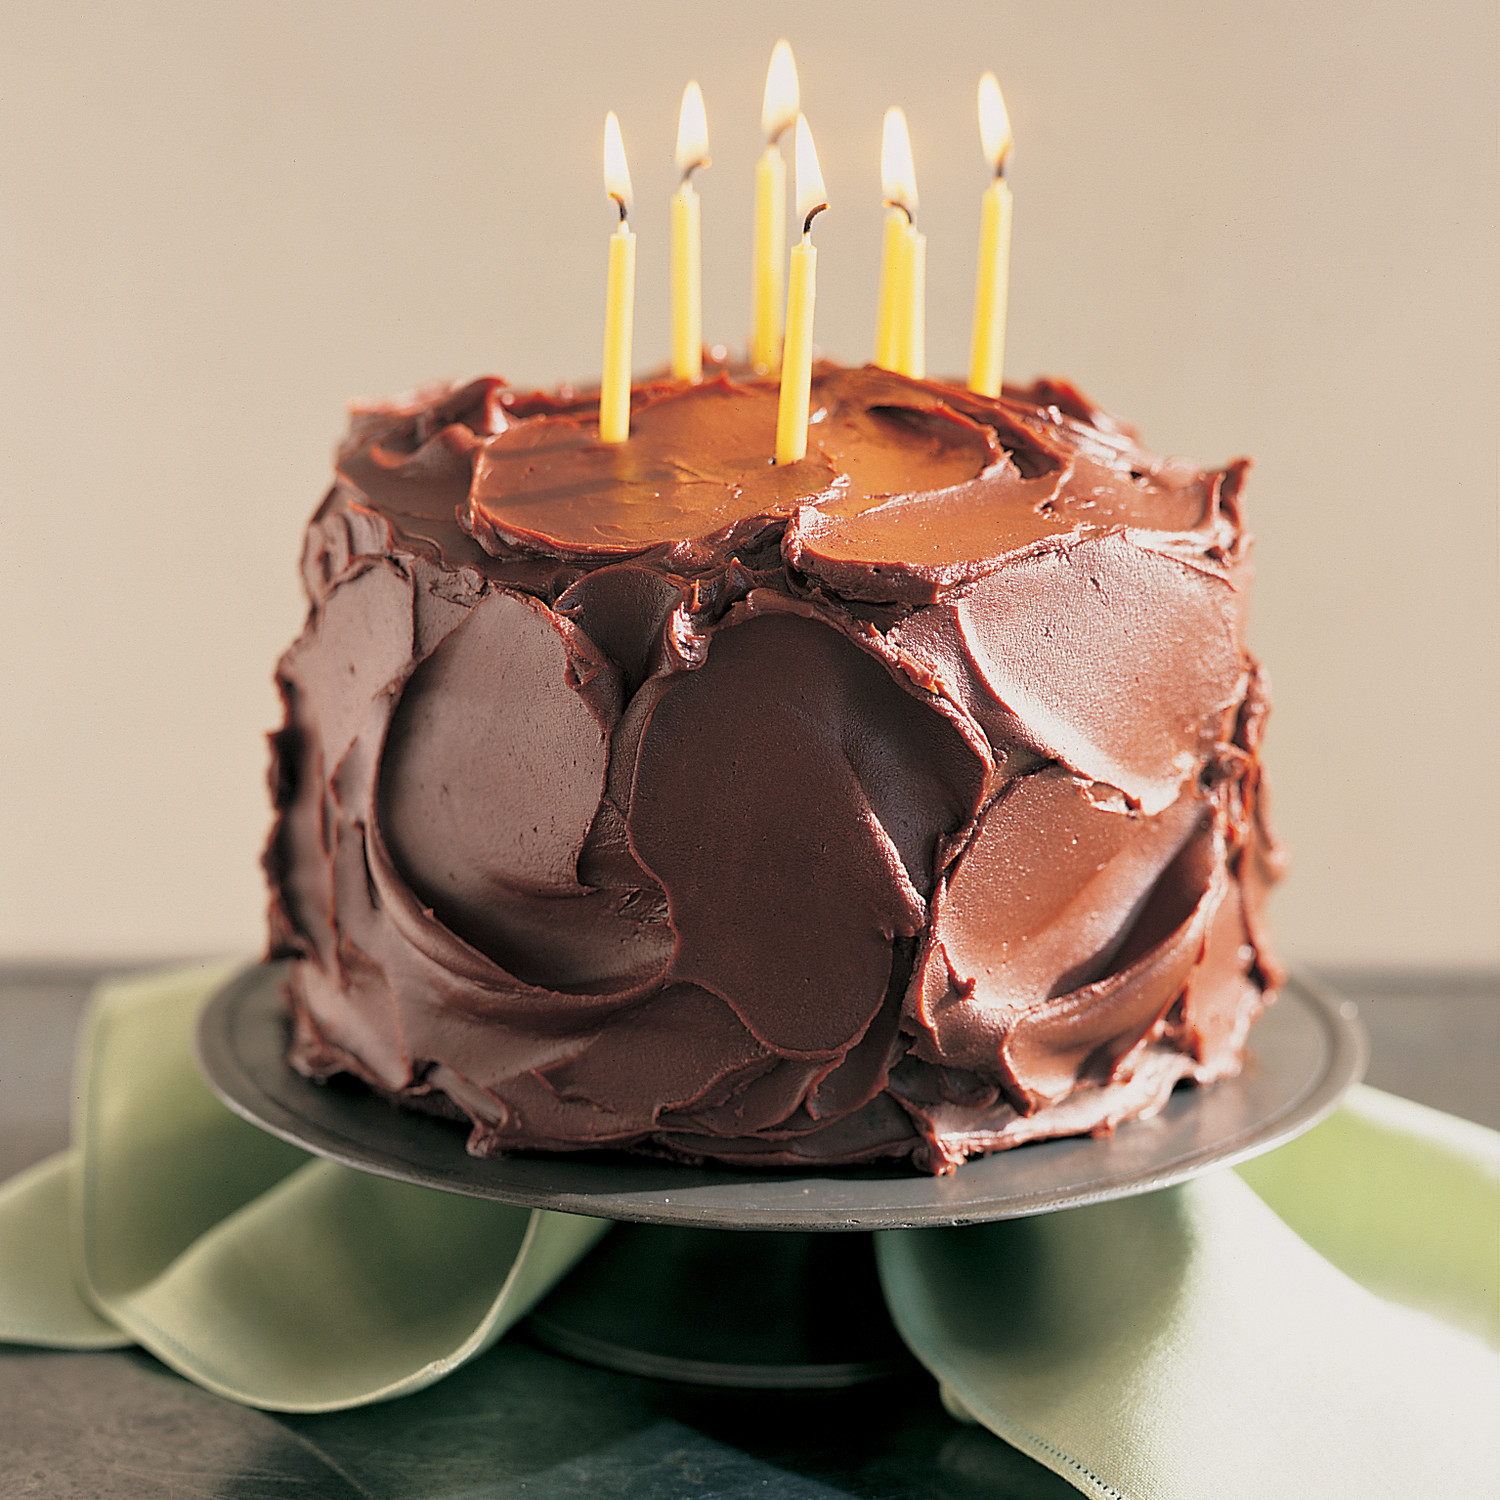 Extravagant birthday cakes recipes